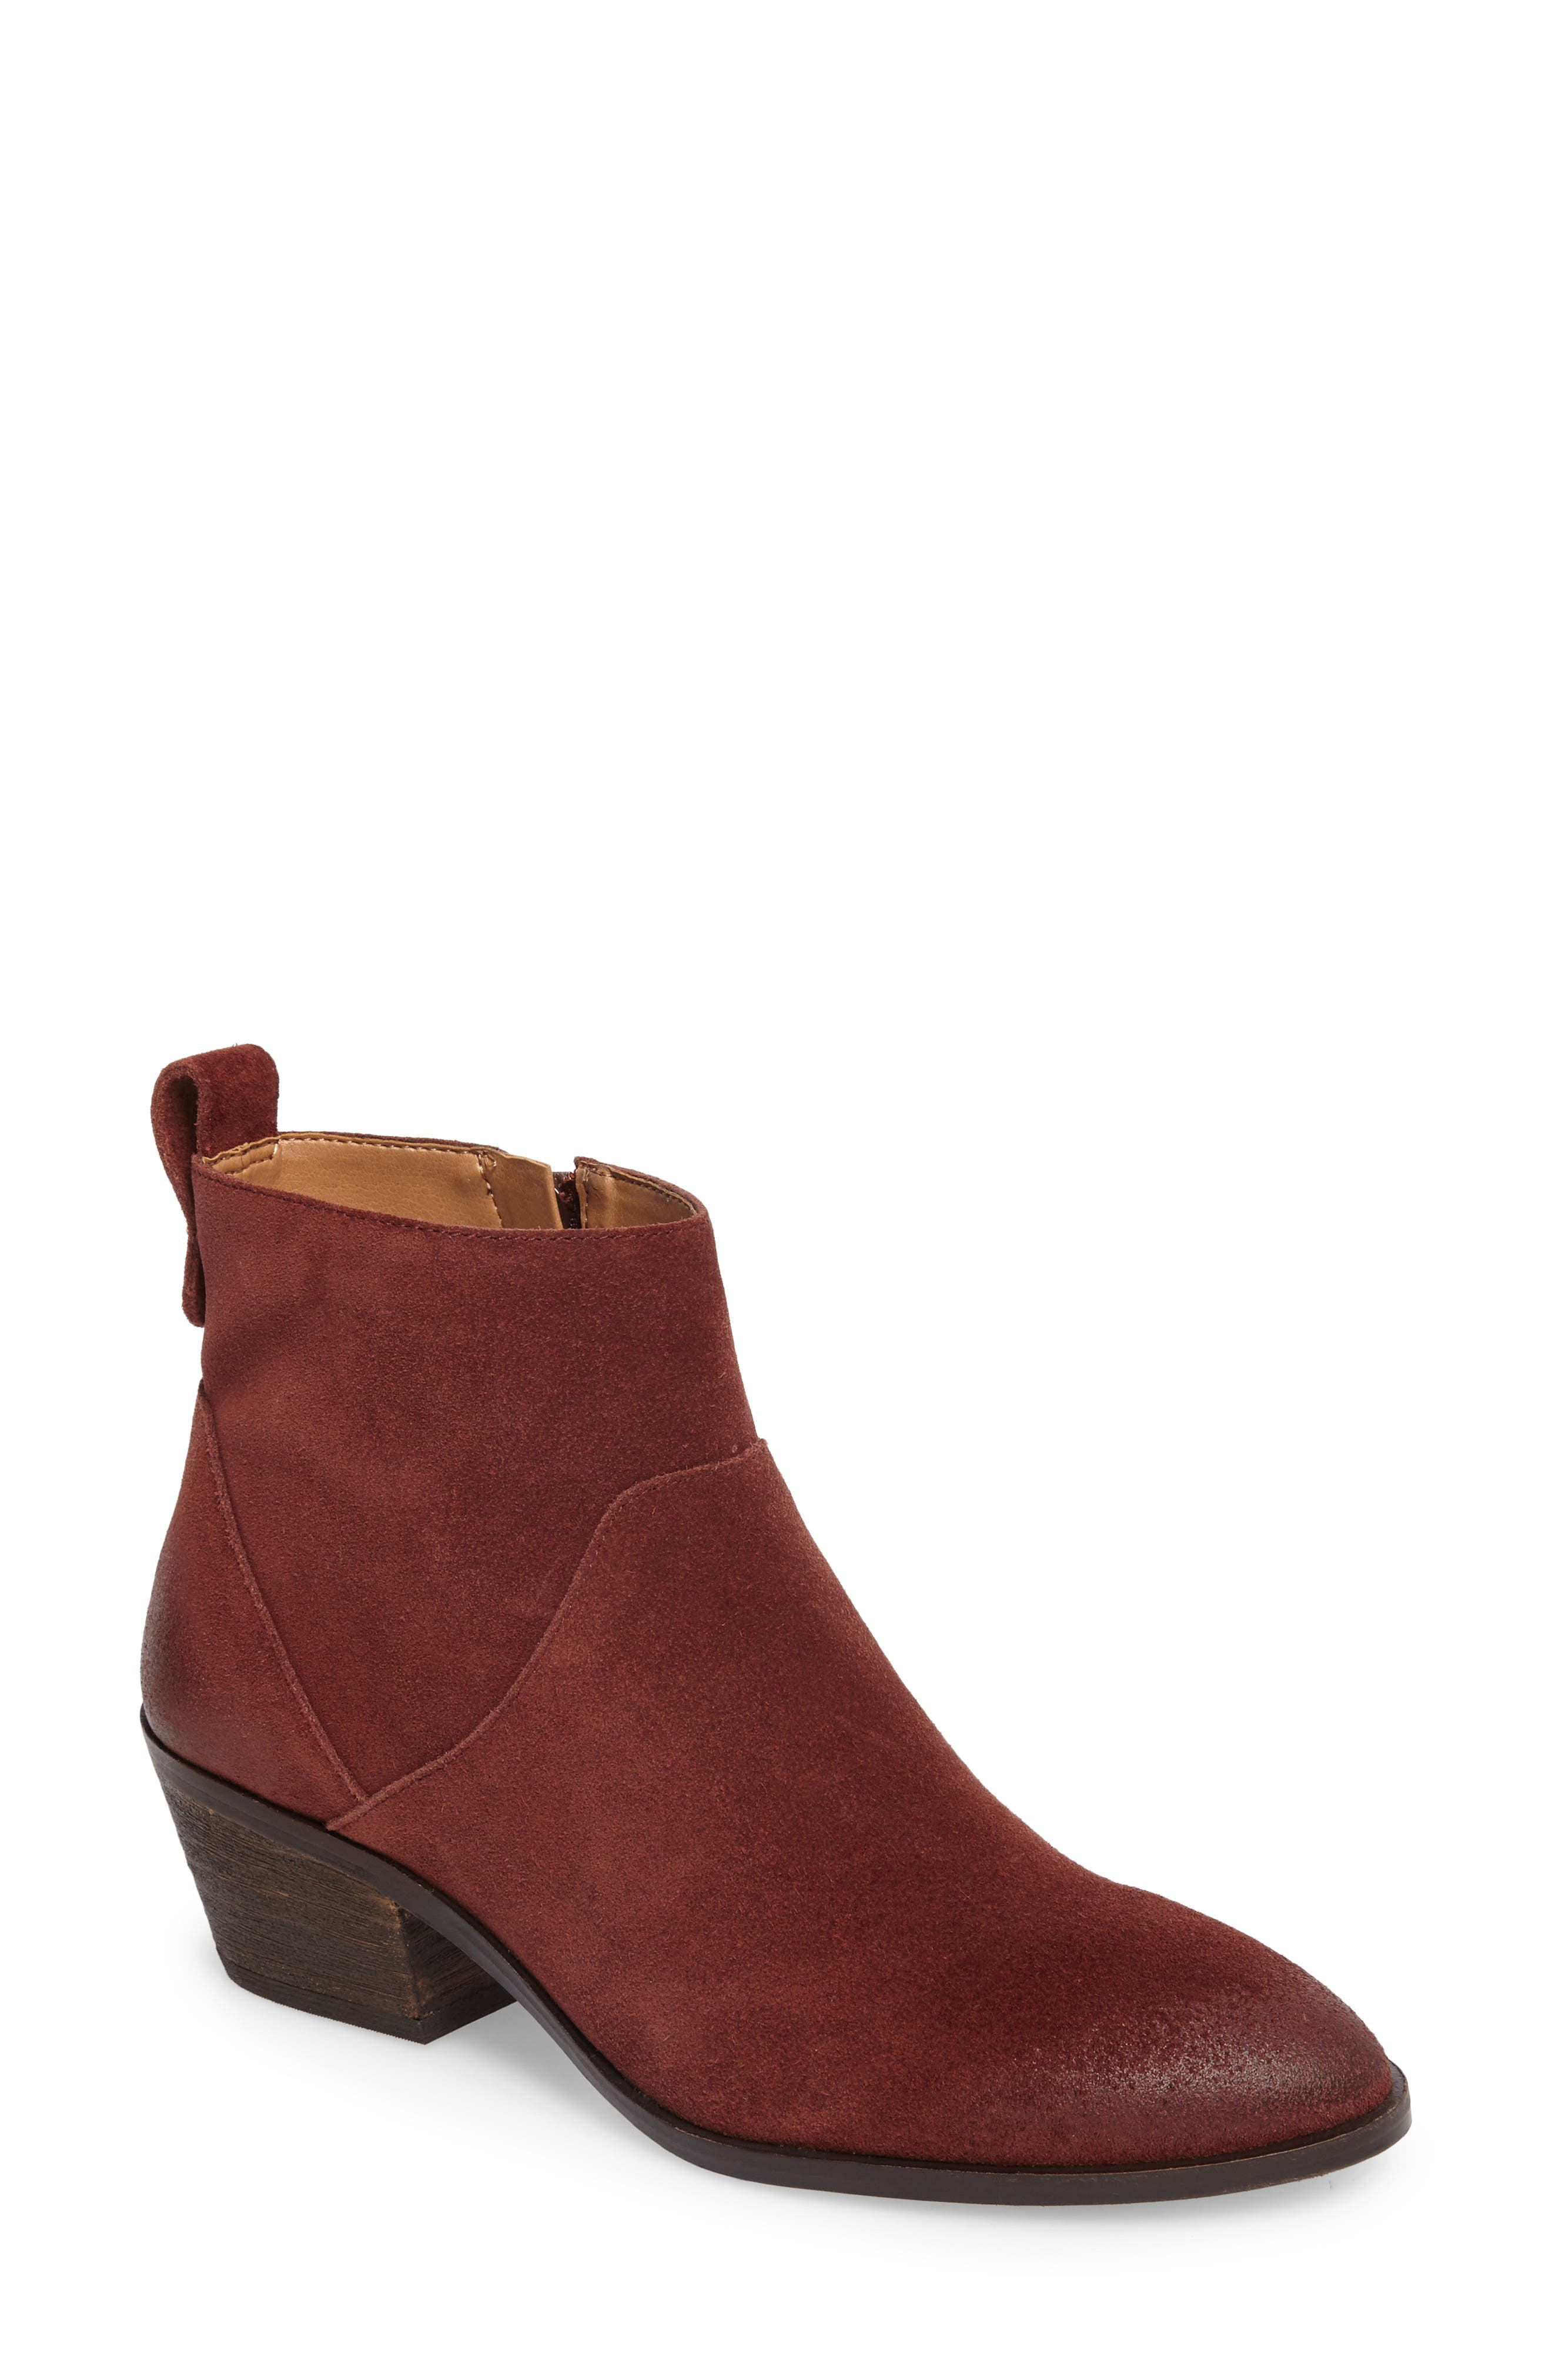 Alternate Image 1 Selected - Sole Society Vixen Bootie (Women)